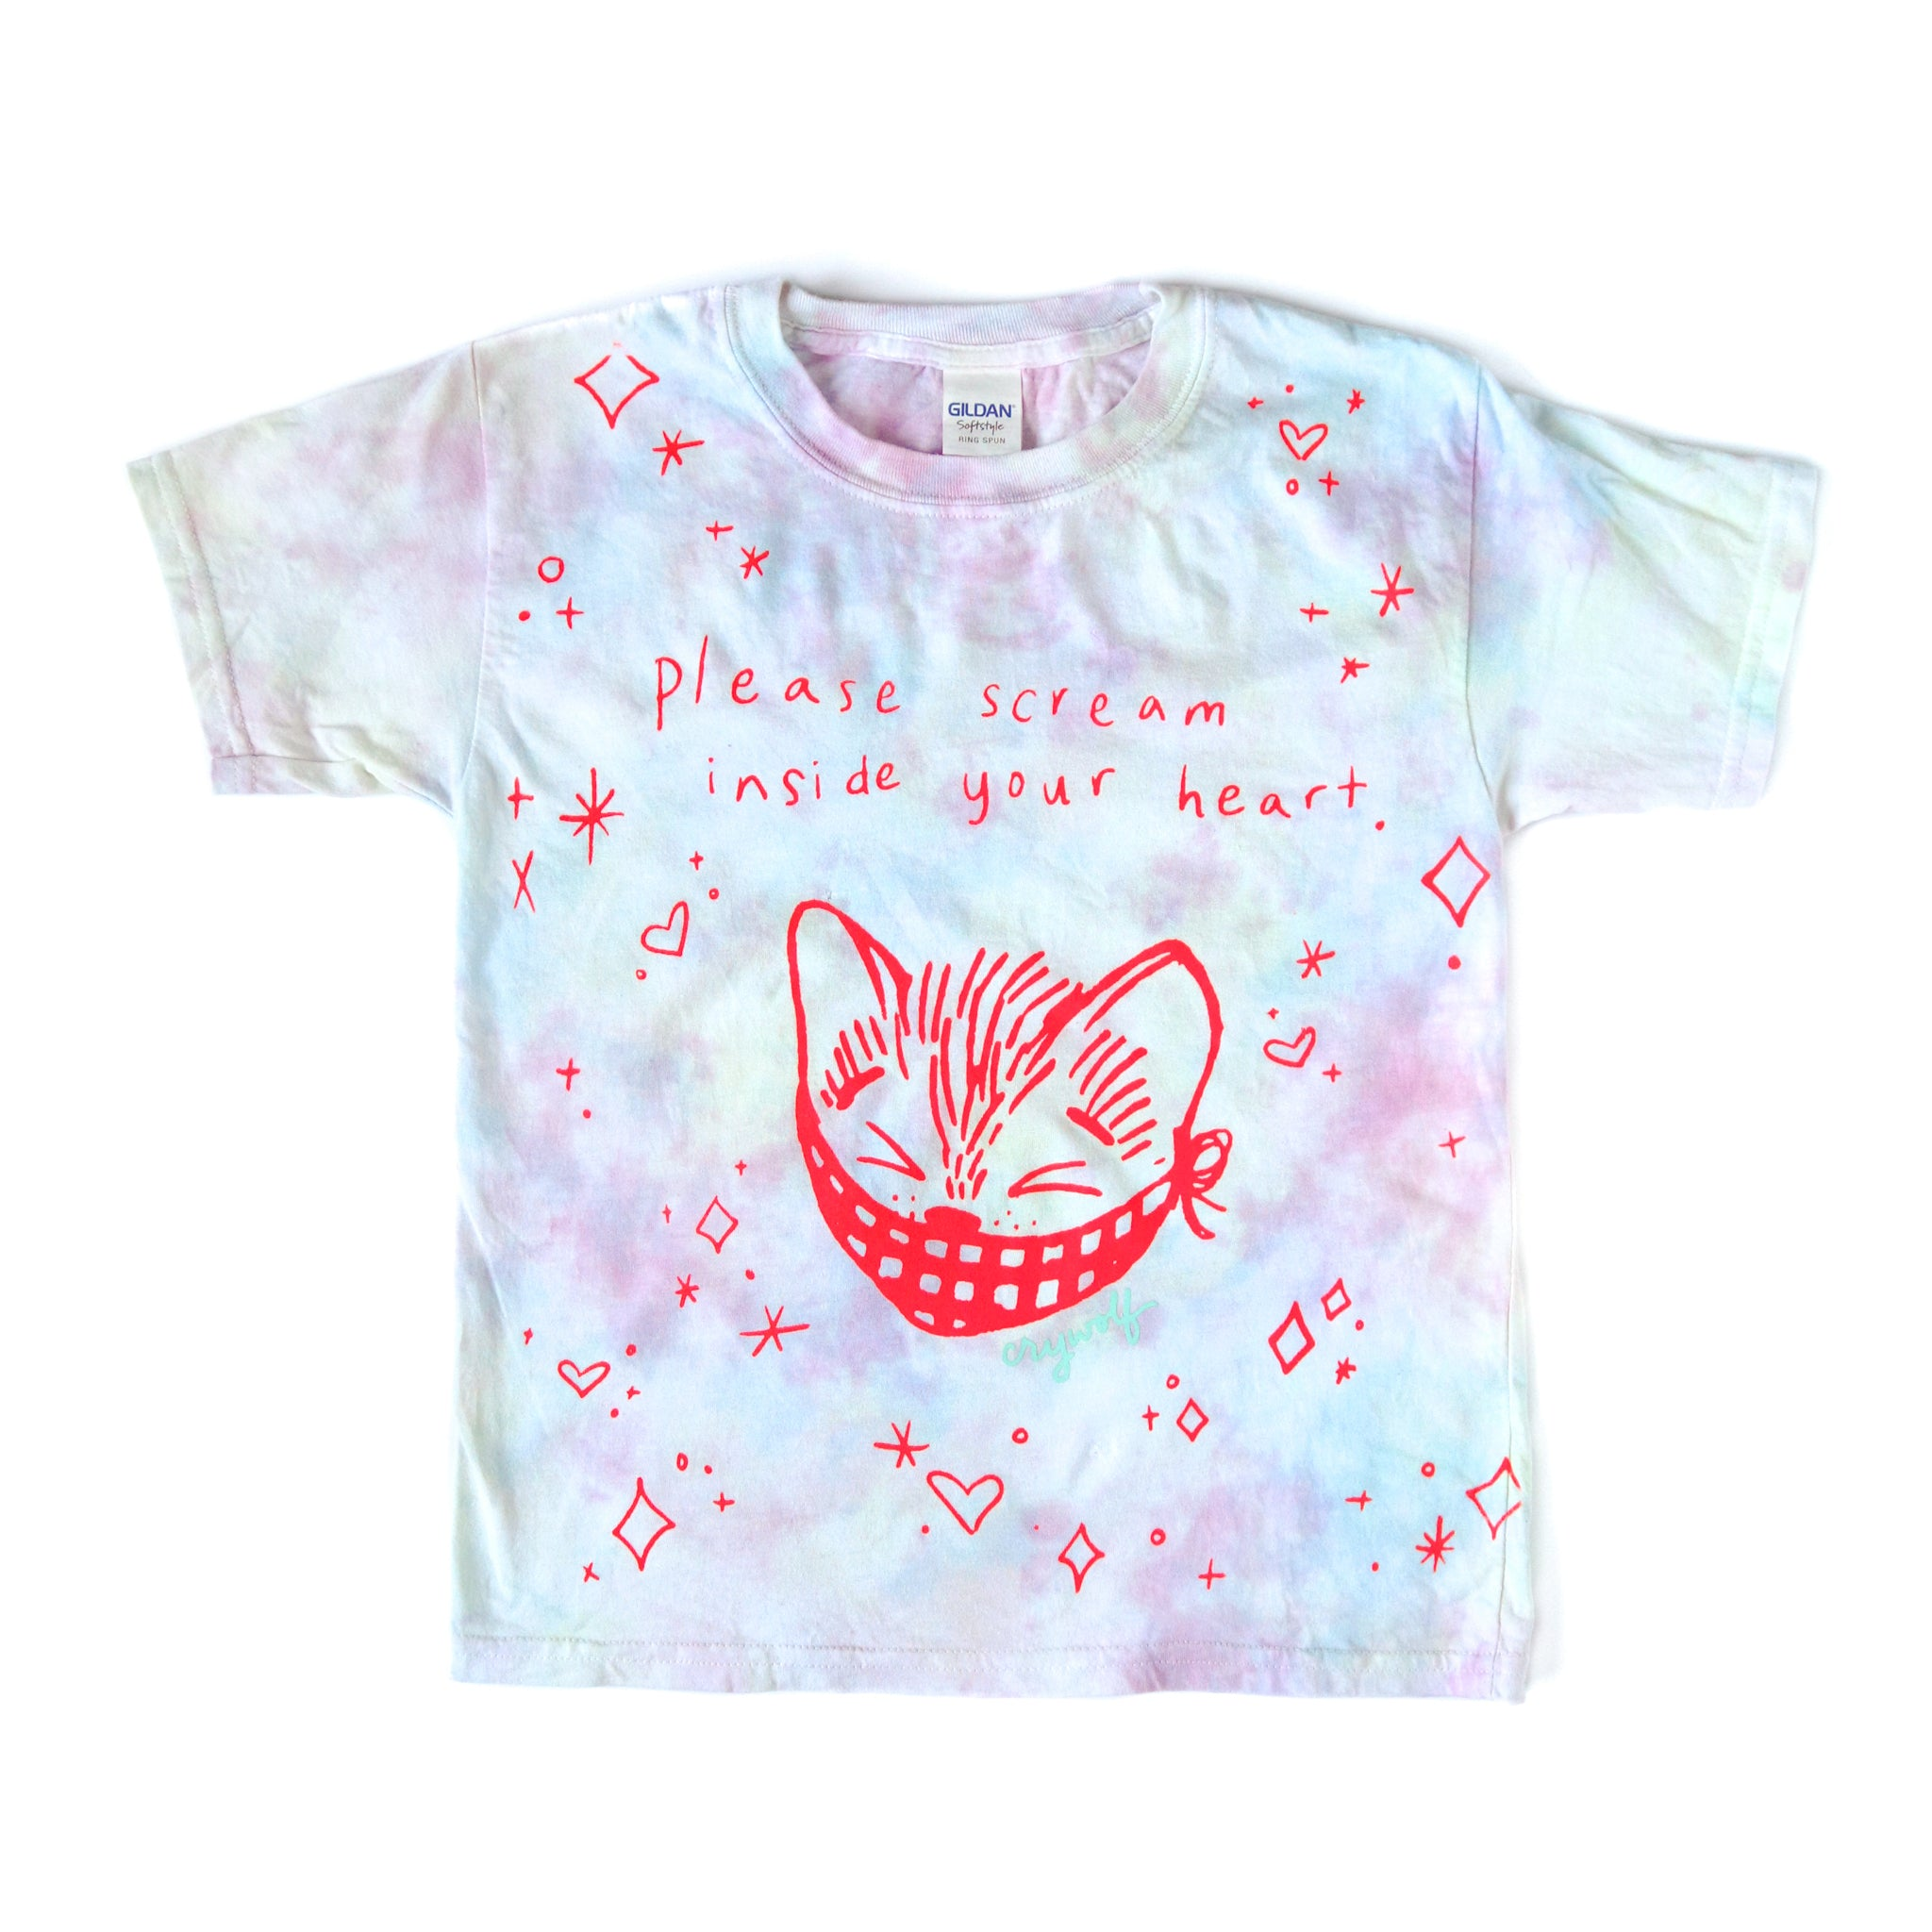 Kids Scream Inside Your Heart Kitty Tee